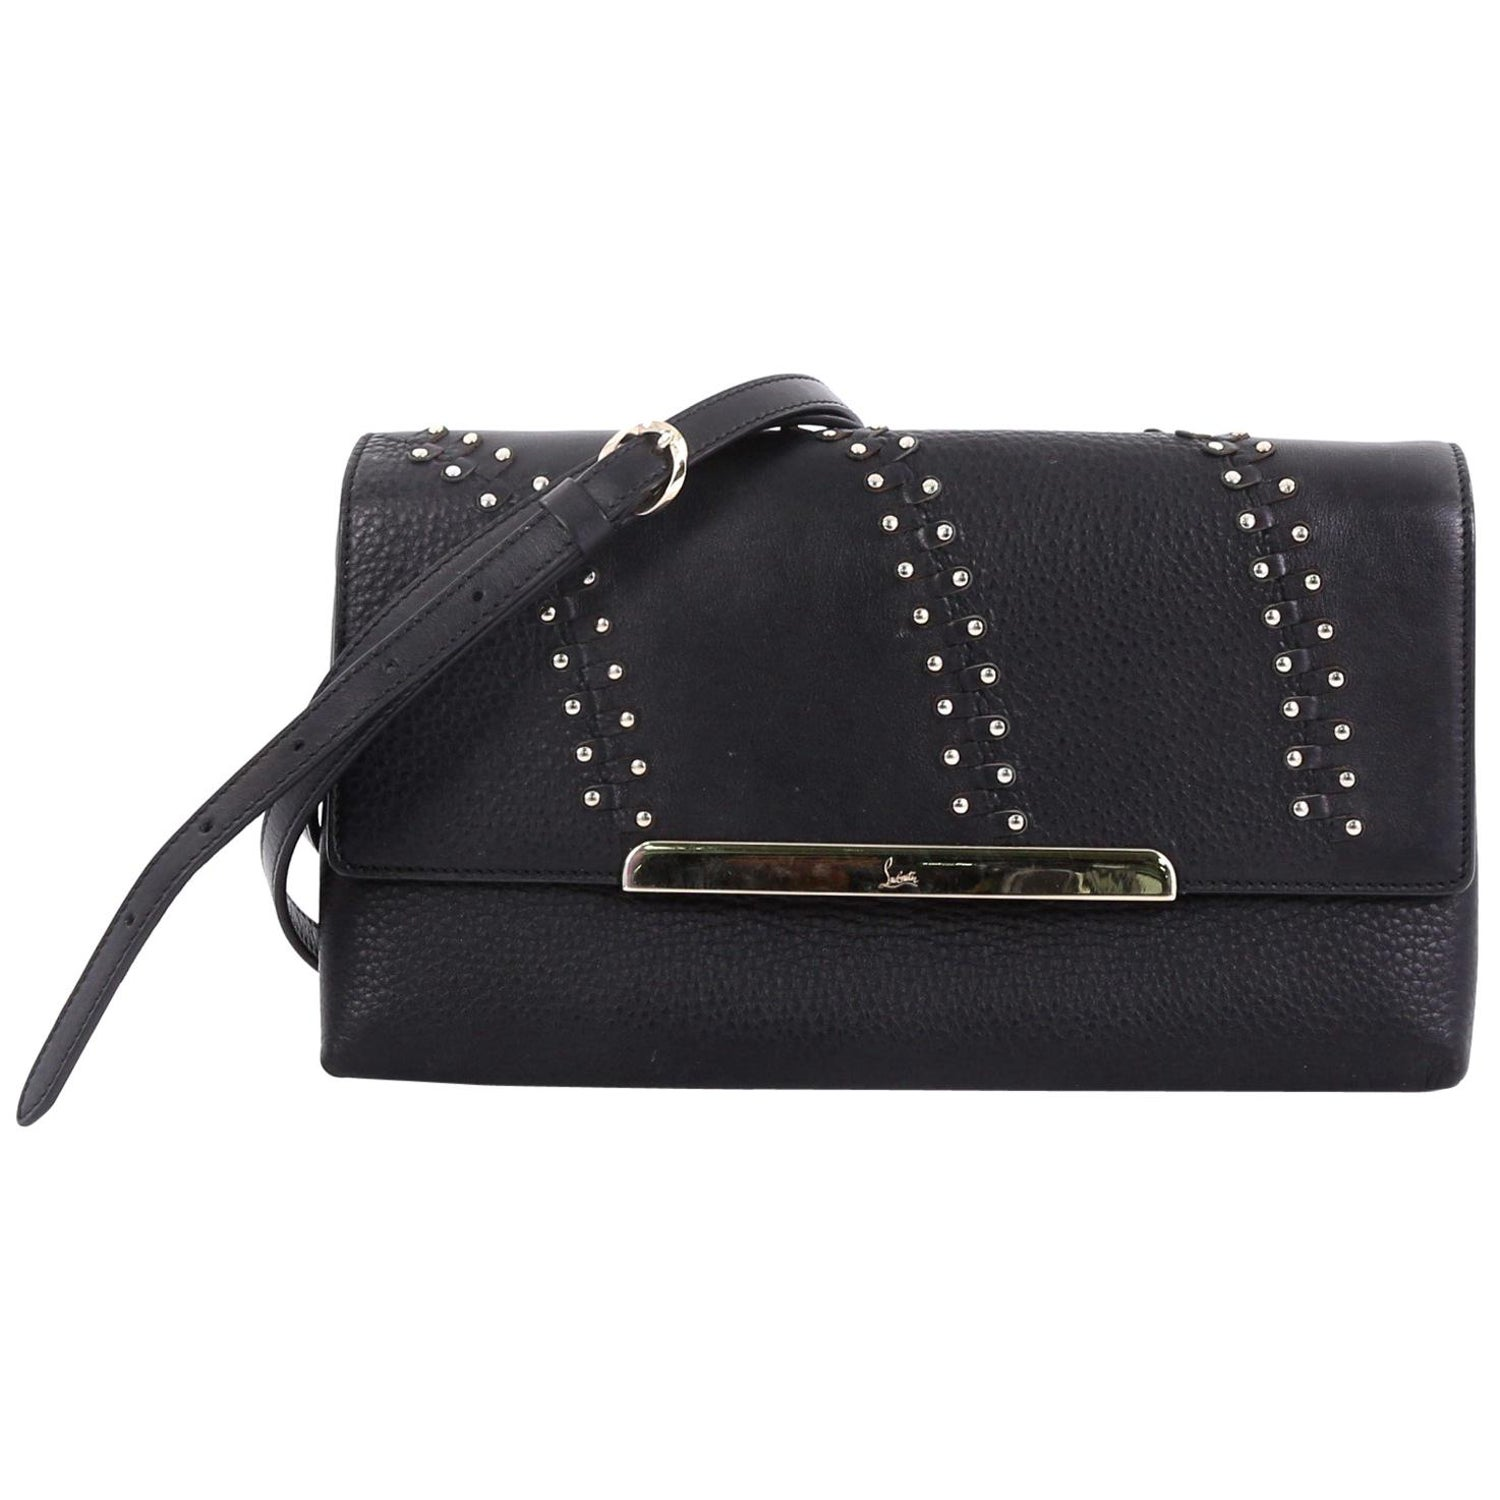 b4b06d976d8 Christian Louboutin Rougissime Crossbody Bag Studded Woven Leather Large